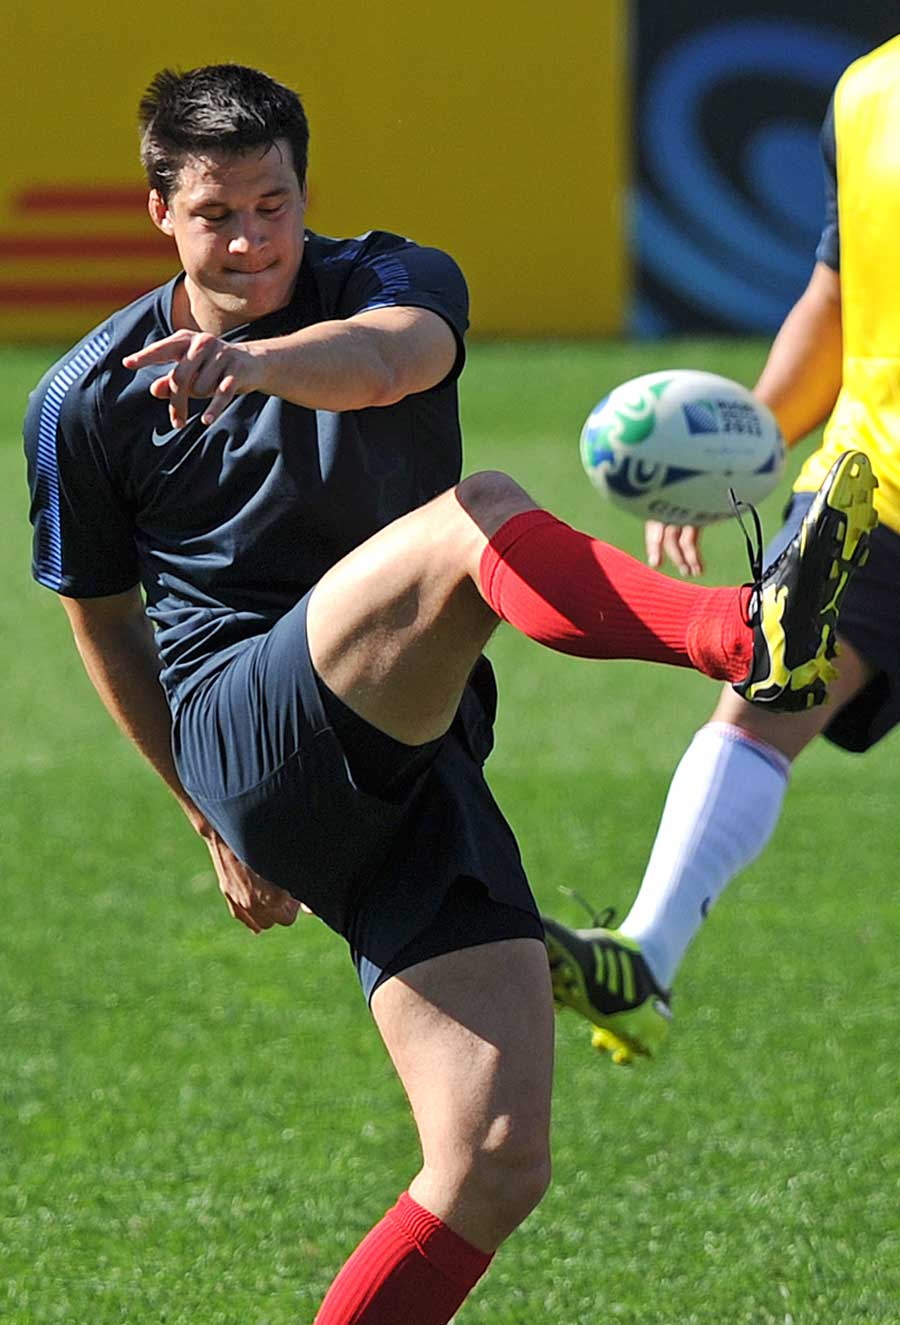 France's Francois Trinh-Duc slices a kick during training